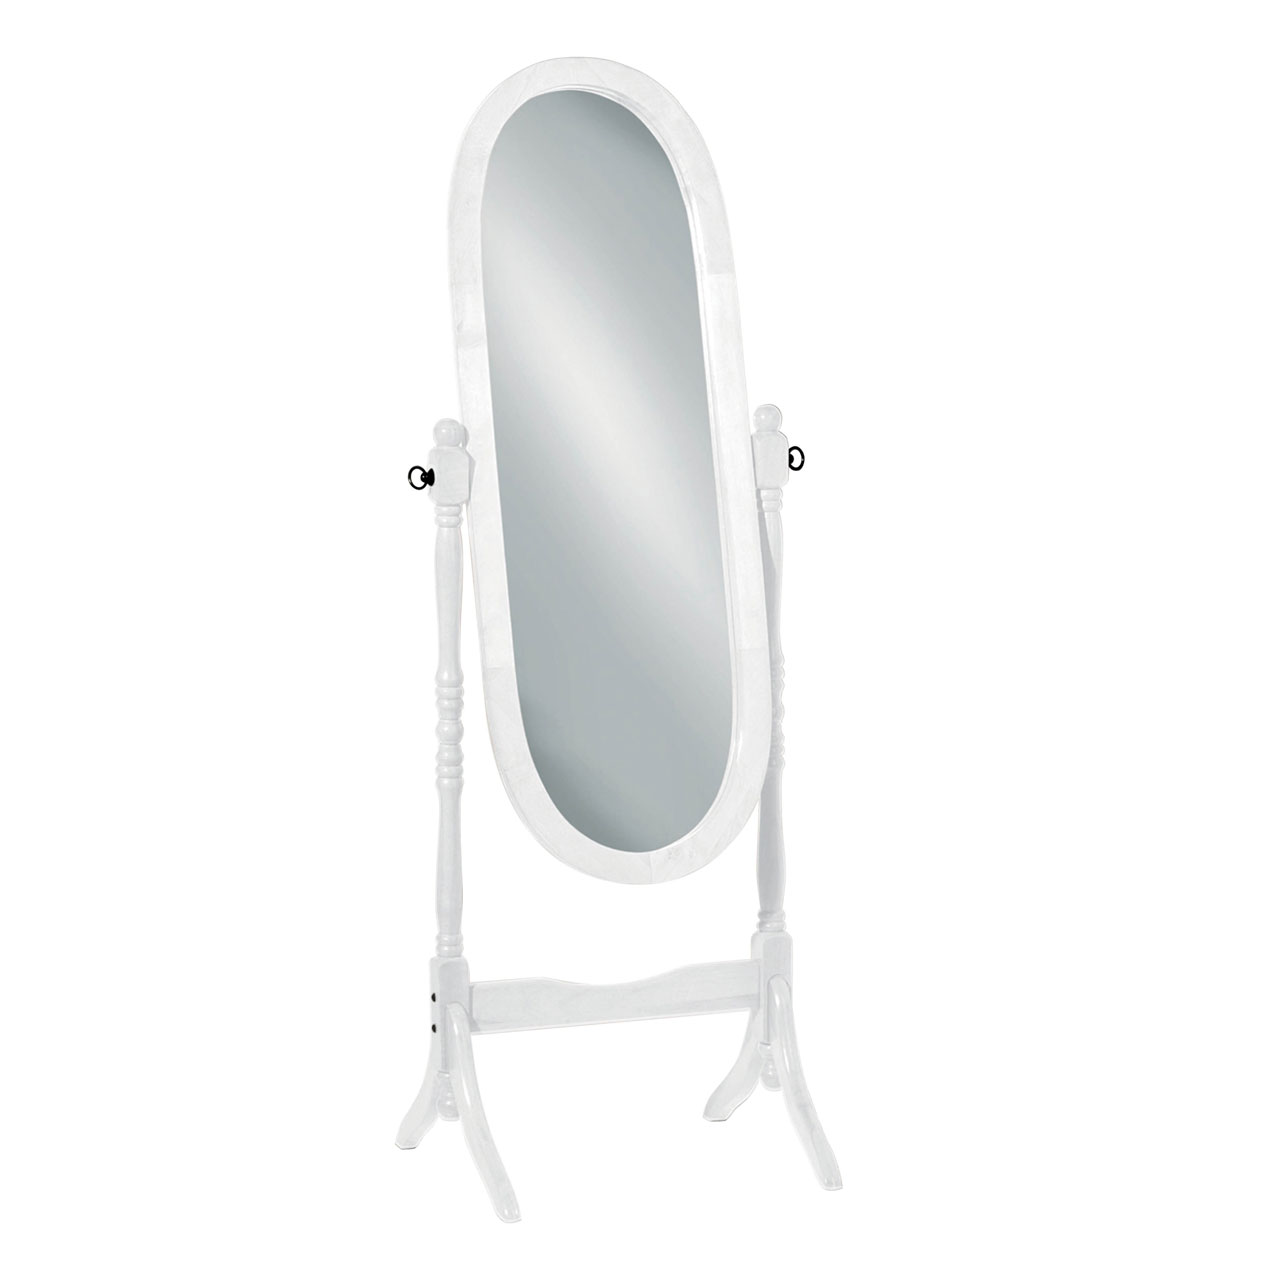 Premier Oval Cheval Mirror, Floor Standing, White Wood Oval Frame | eBay